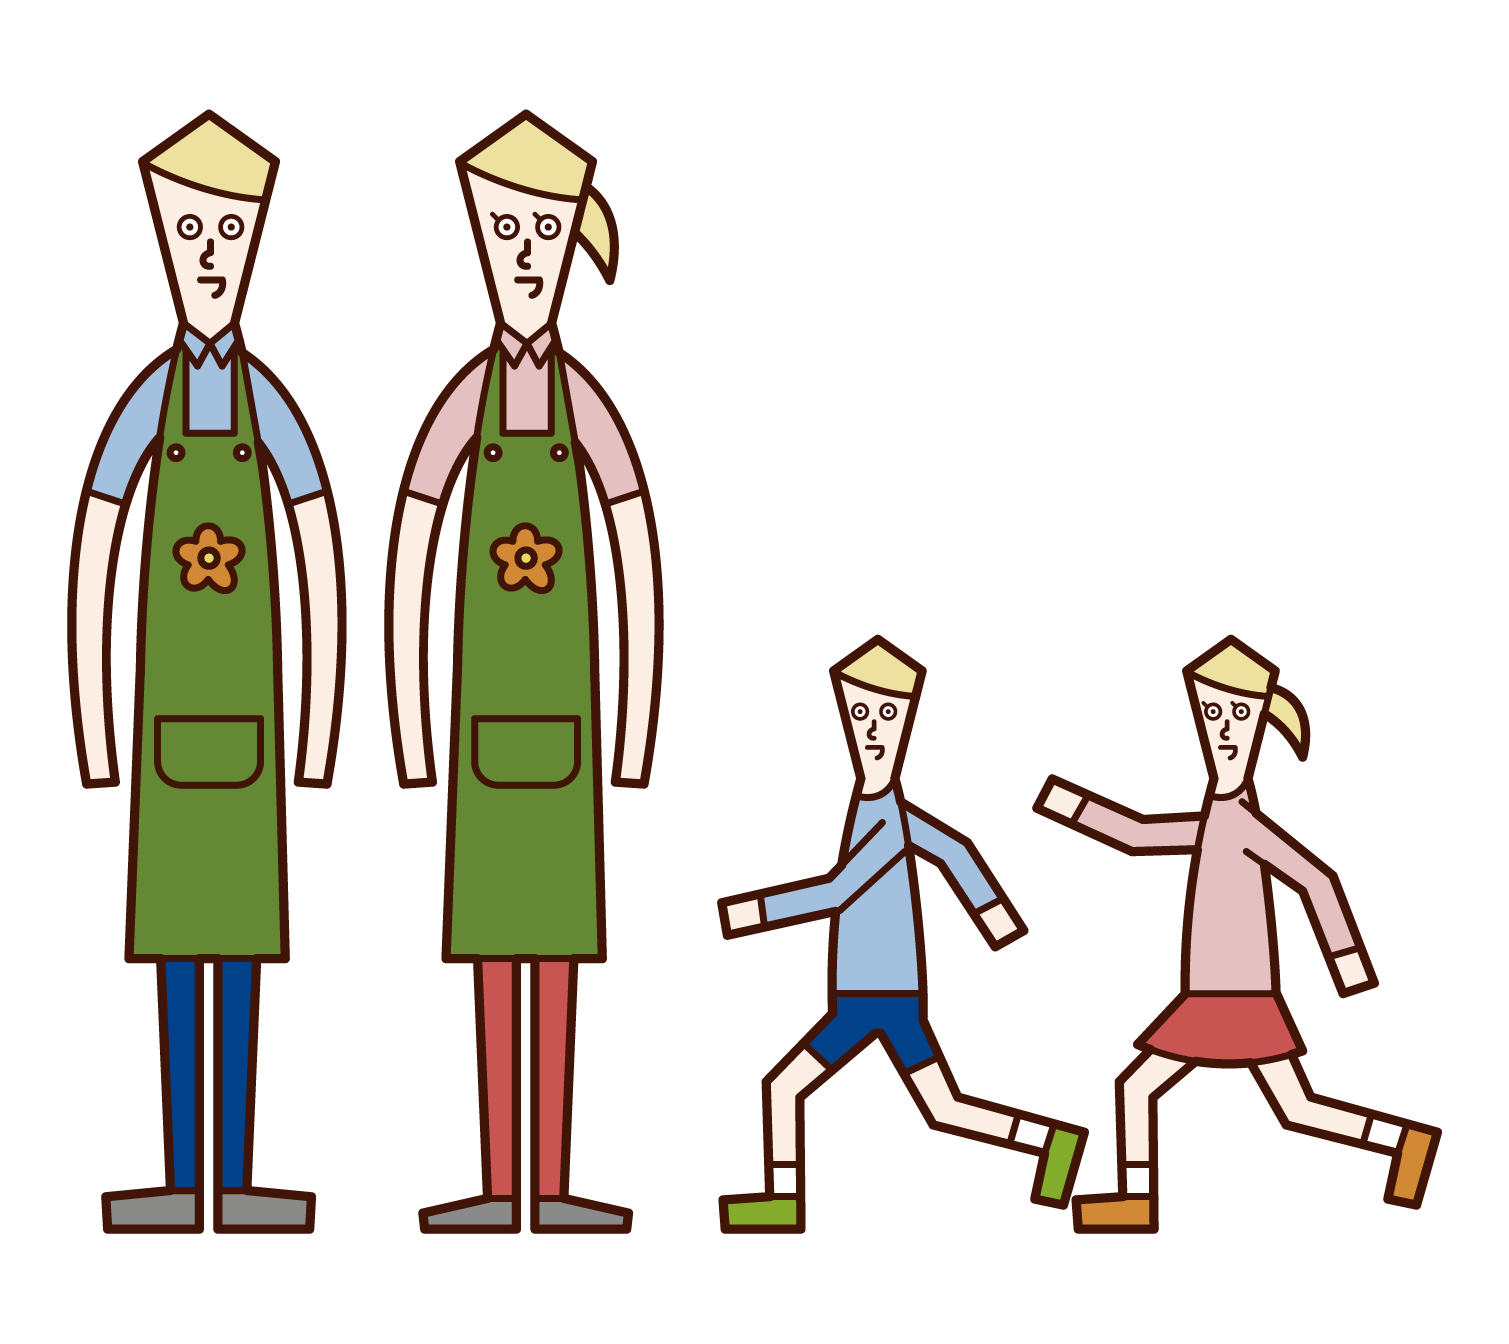 Illustration of a nursery teacher (man and woman) playing with children